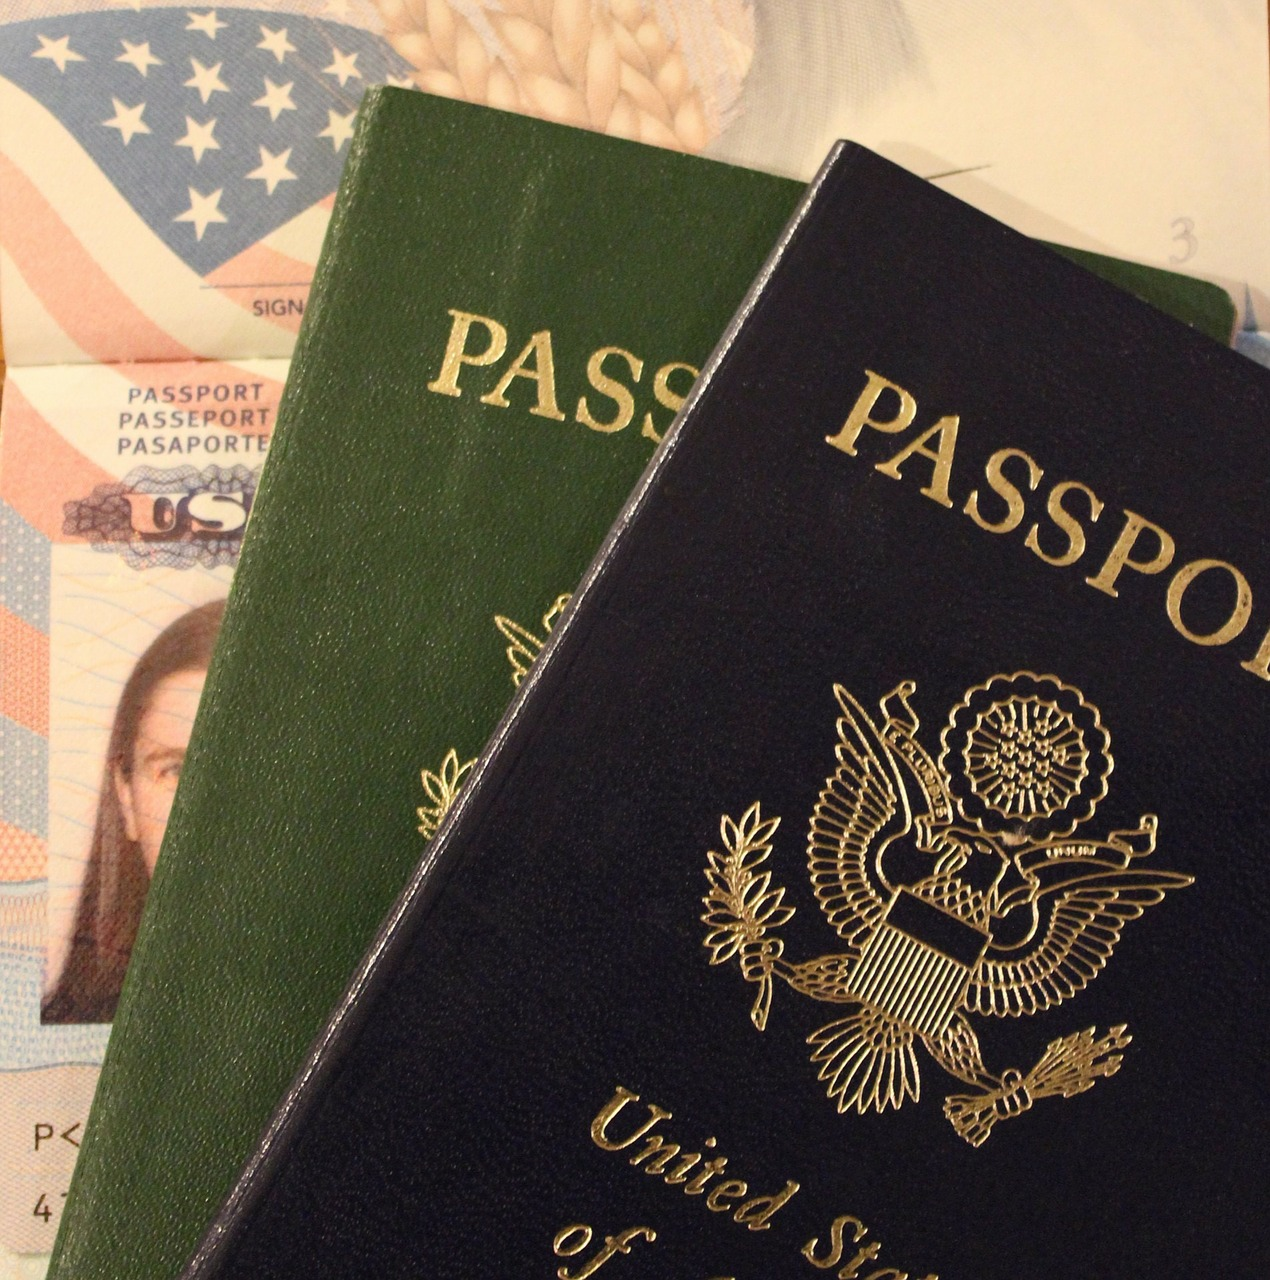 Immigration attorney legal blog sample - EB-JOBS Act of 2015